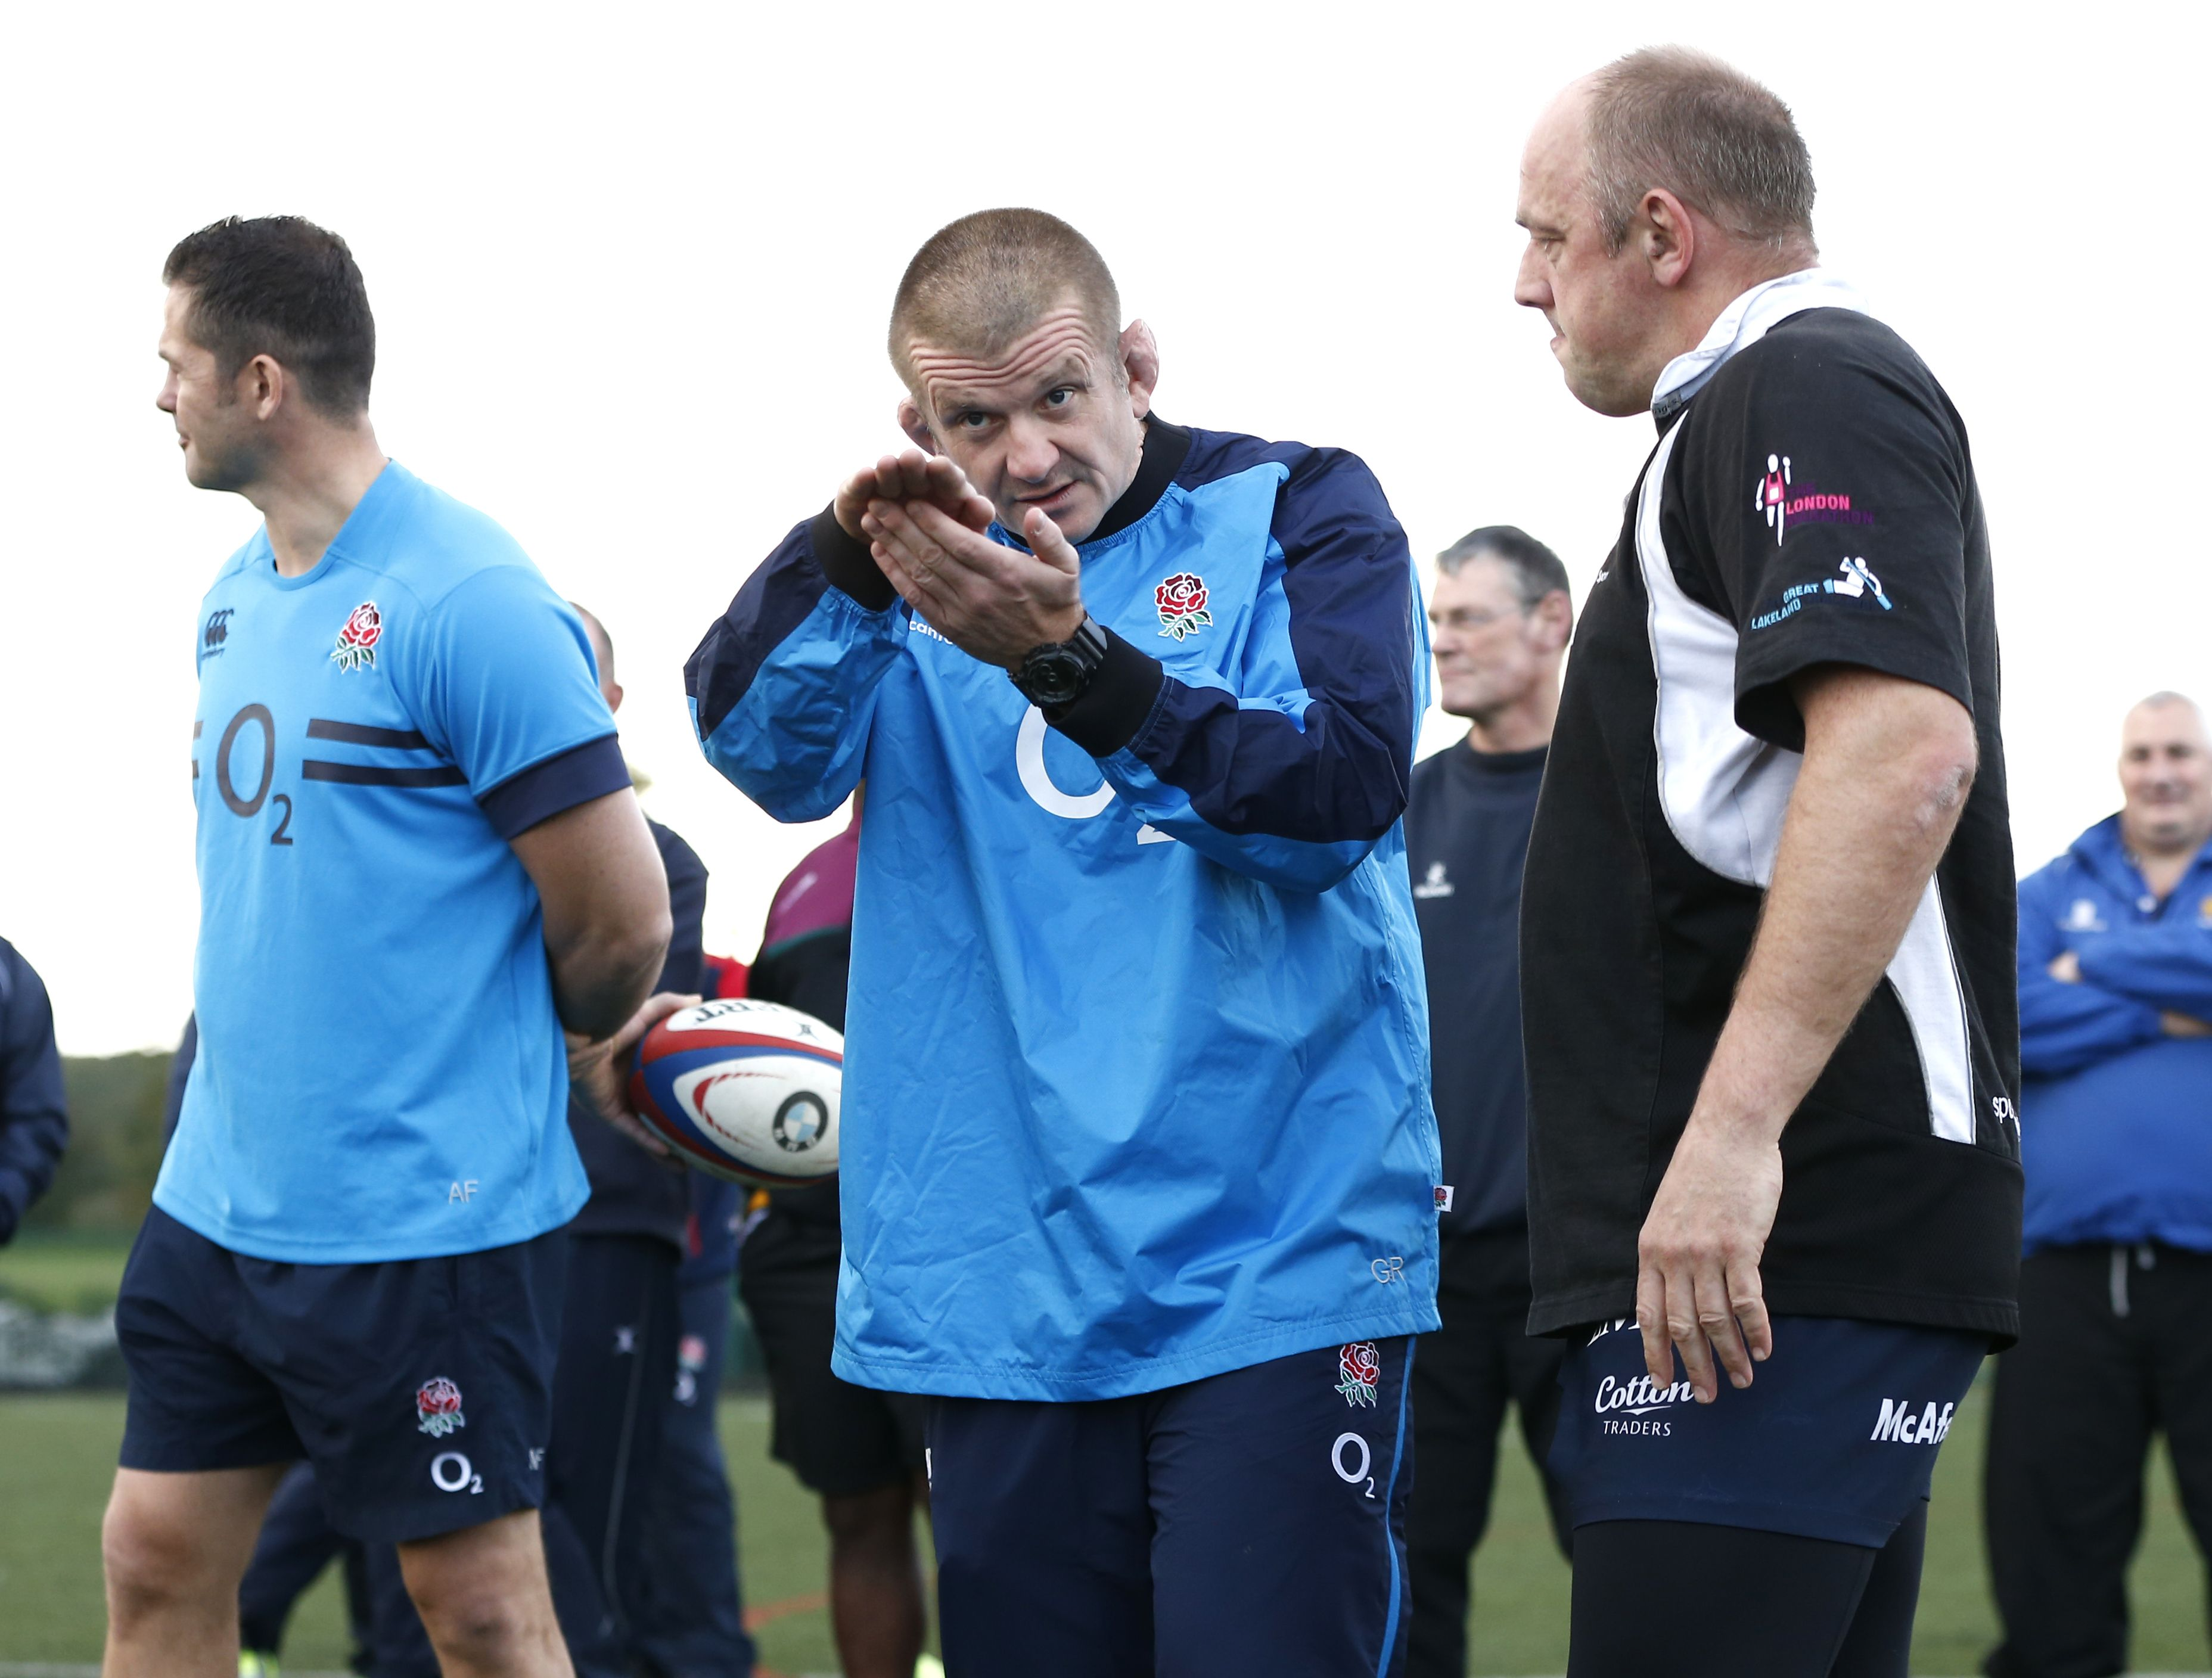 BMW Rugby - Coaching the coaches